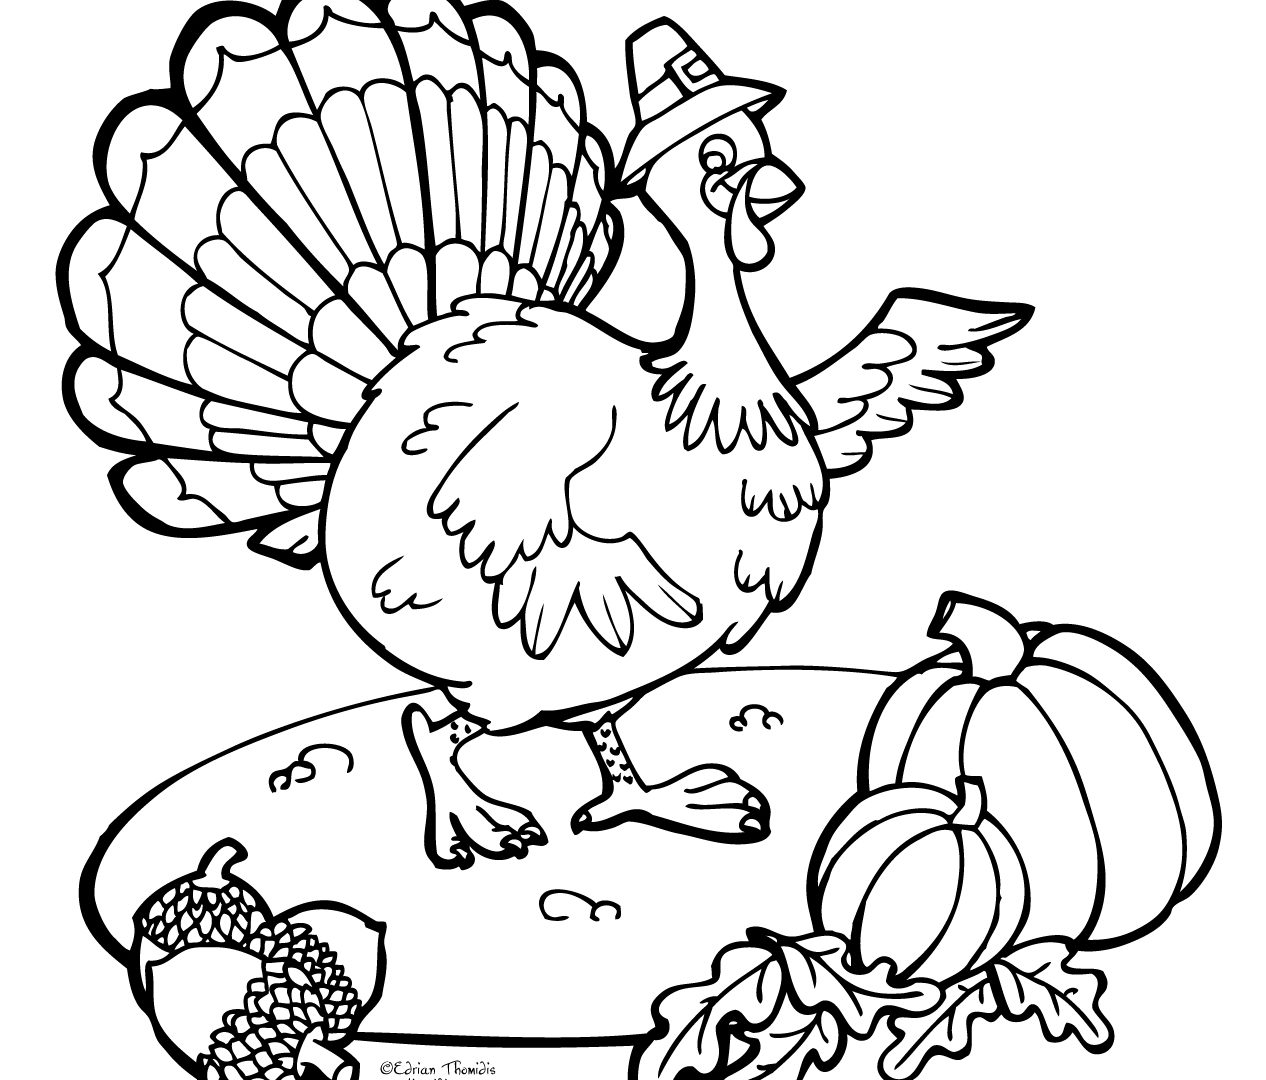 1266x1080 freeintable happy thanksgiving coloring pages foreschoolers disney